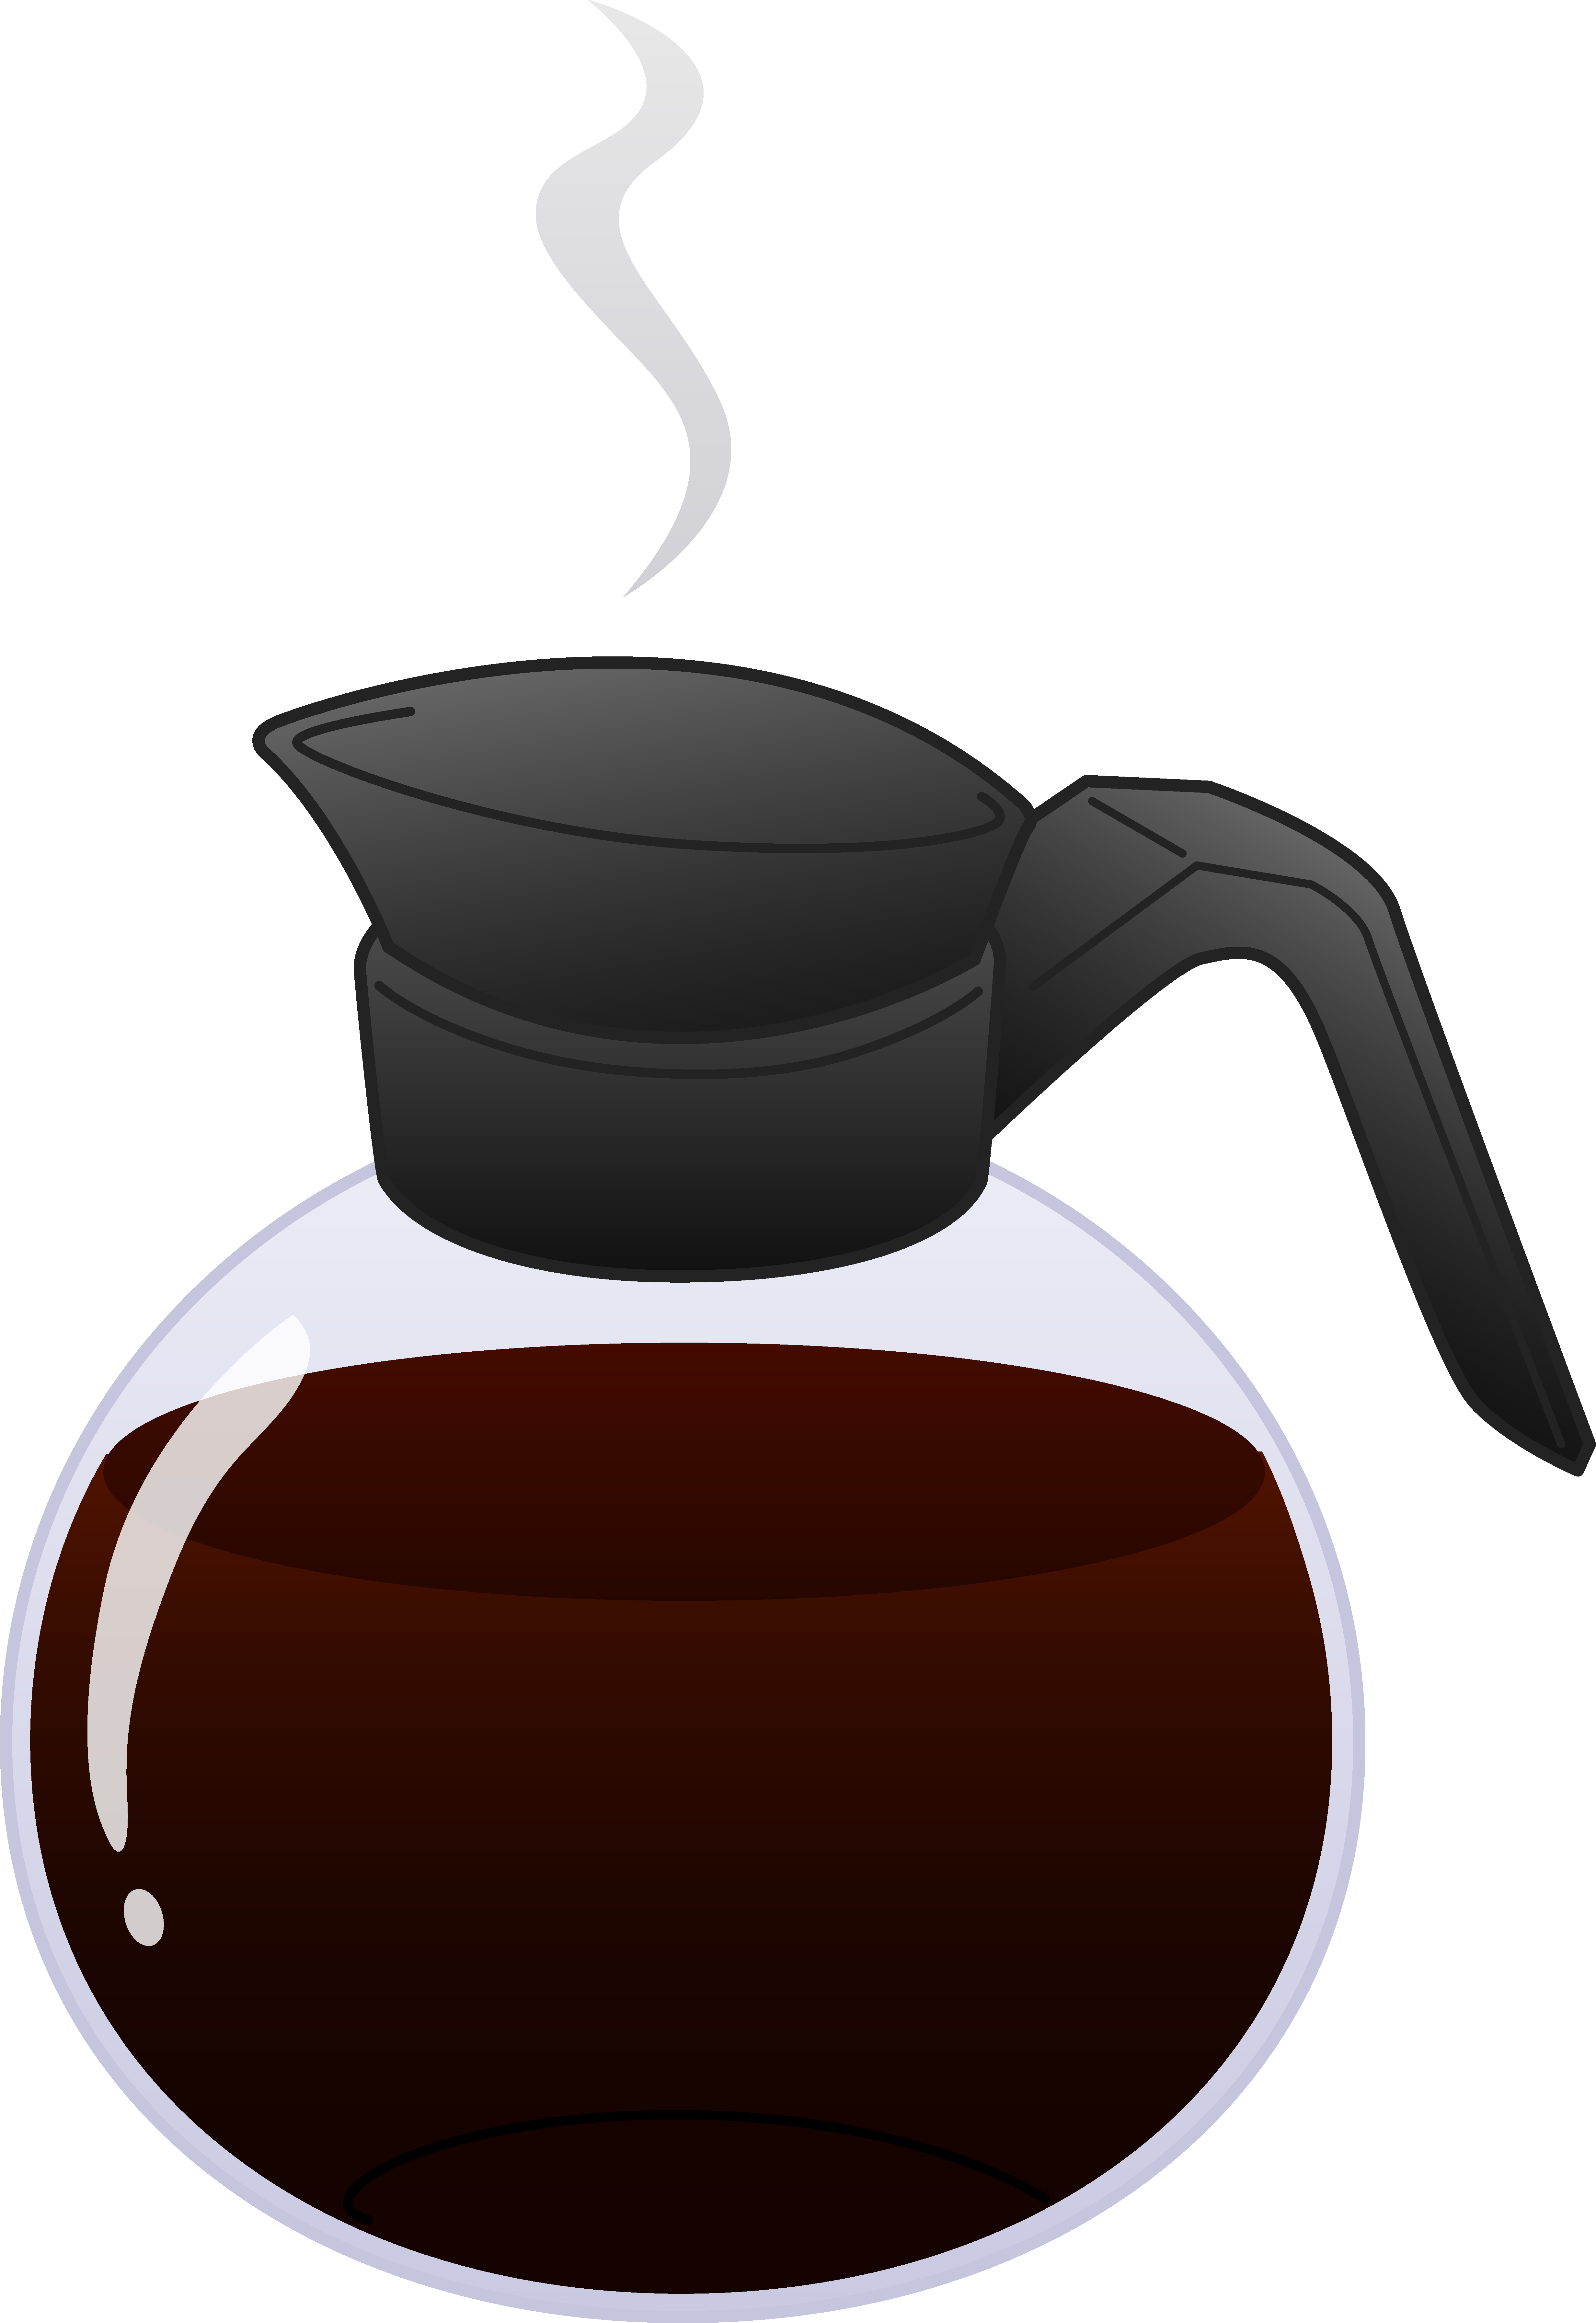 Bubbly cross clipart jpg transparent Use the form below to delete this Hot Cup Of Coffee Clip Art image ... jpg transparent